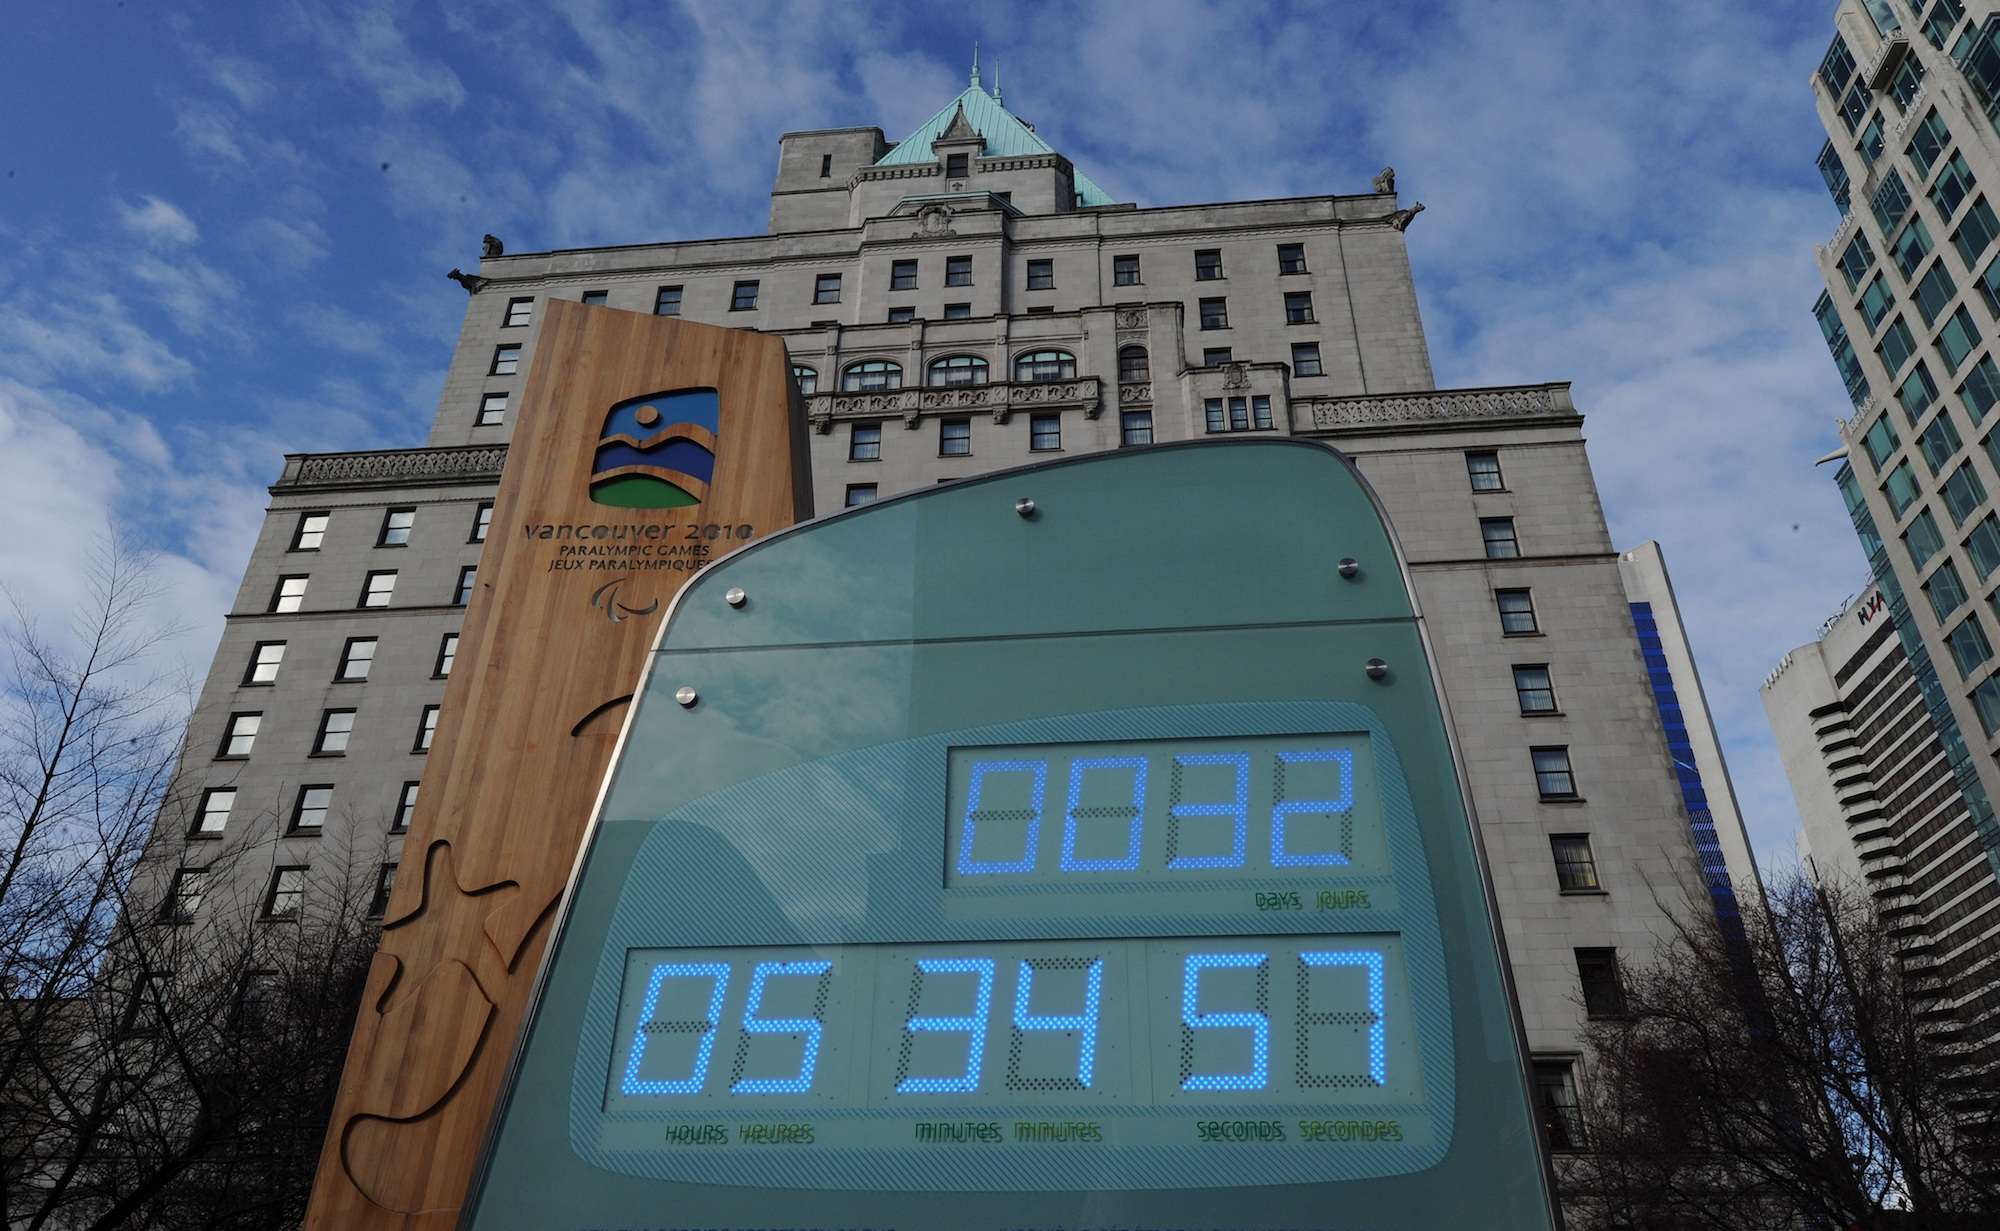 A giant digital clock in front of ab urban building.